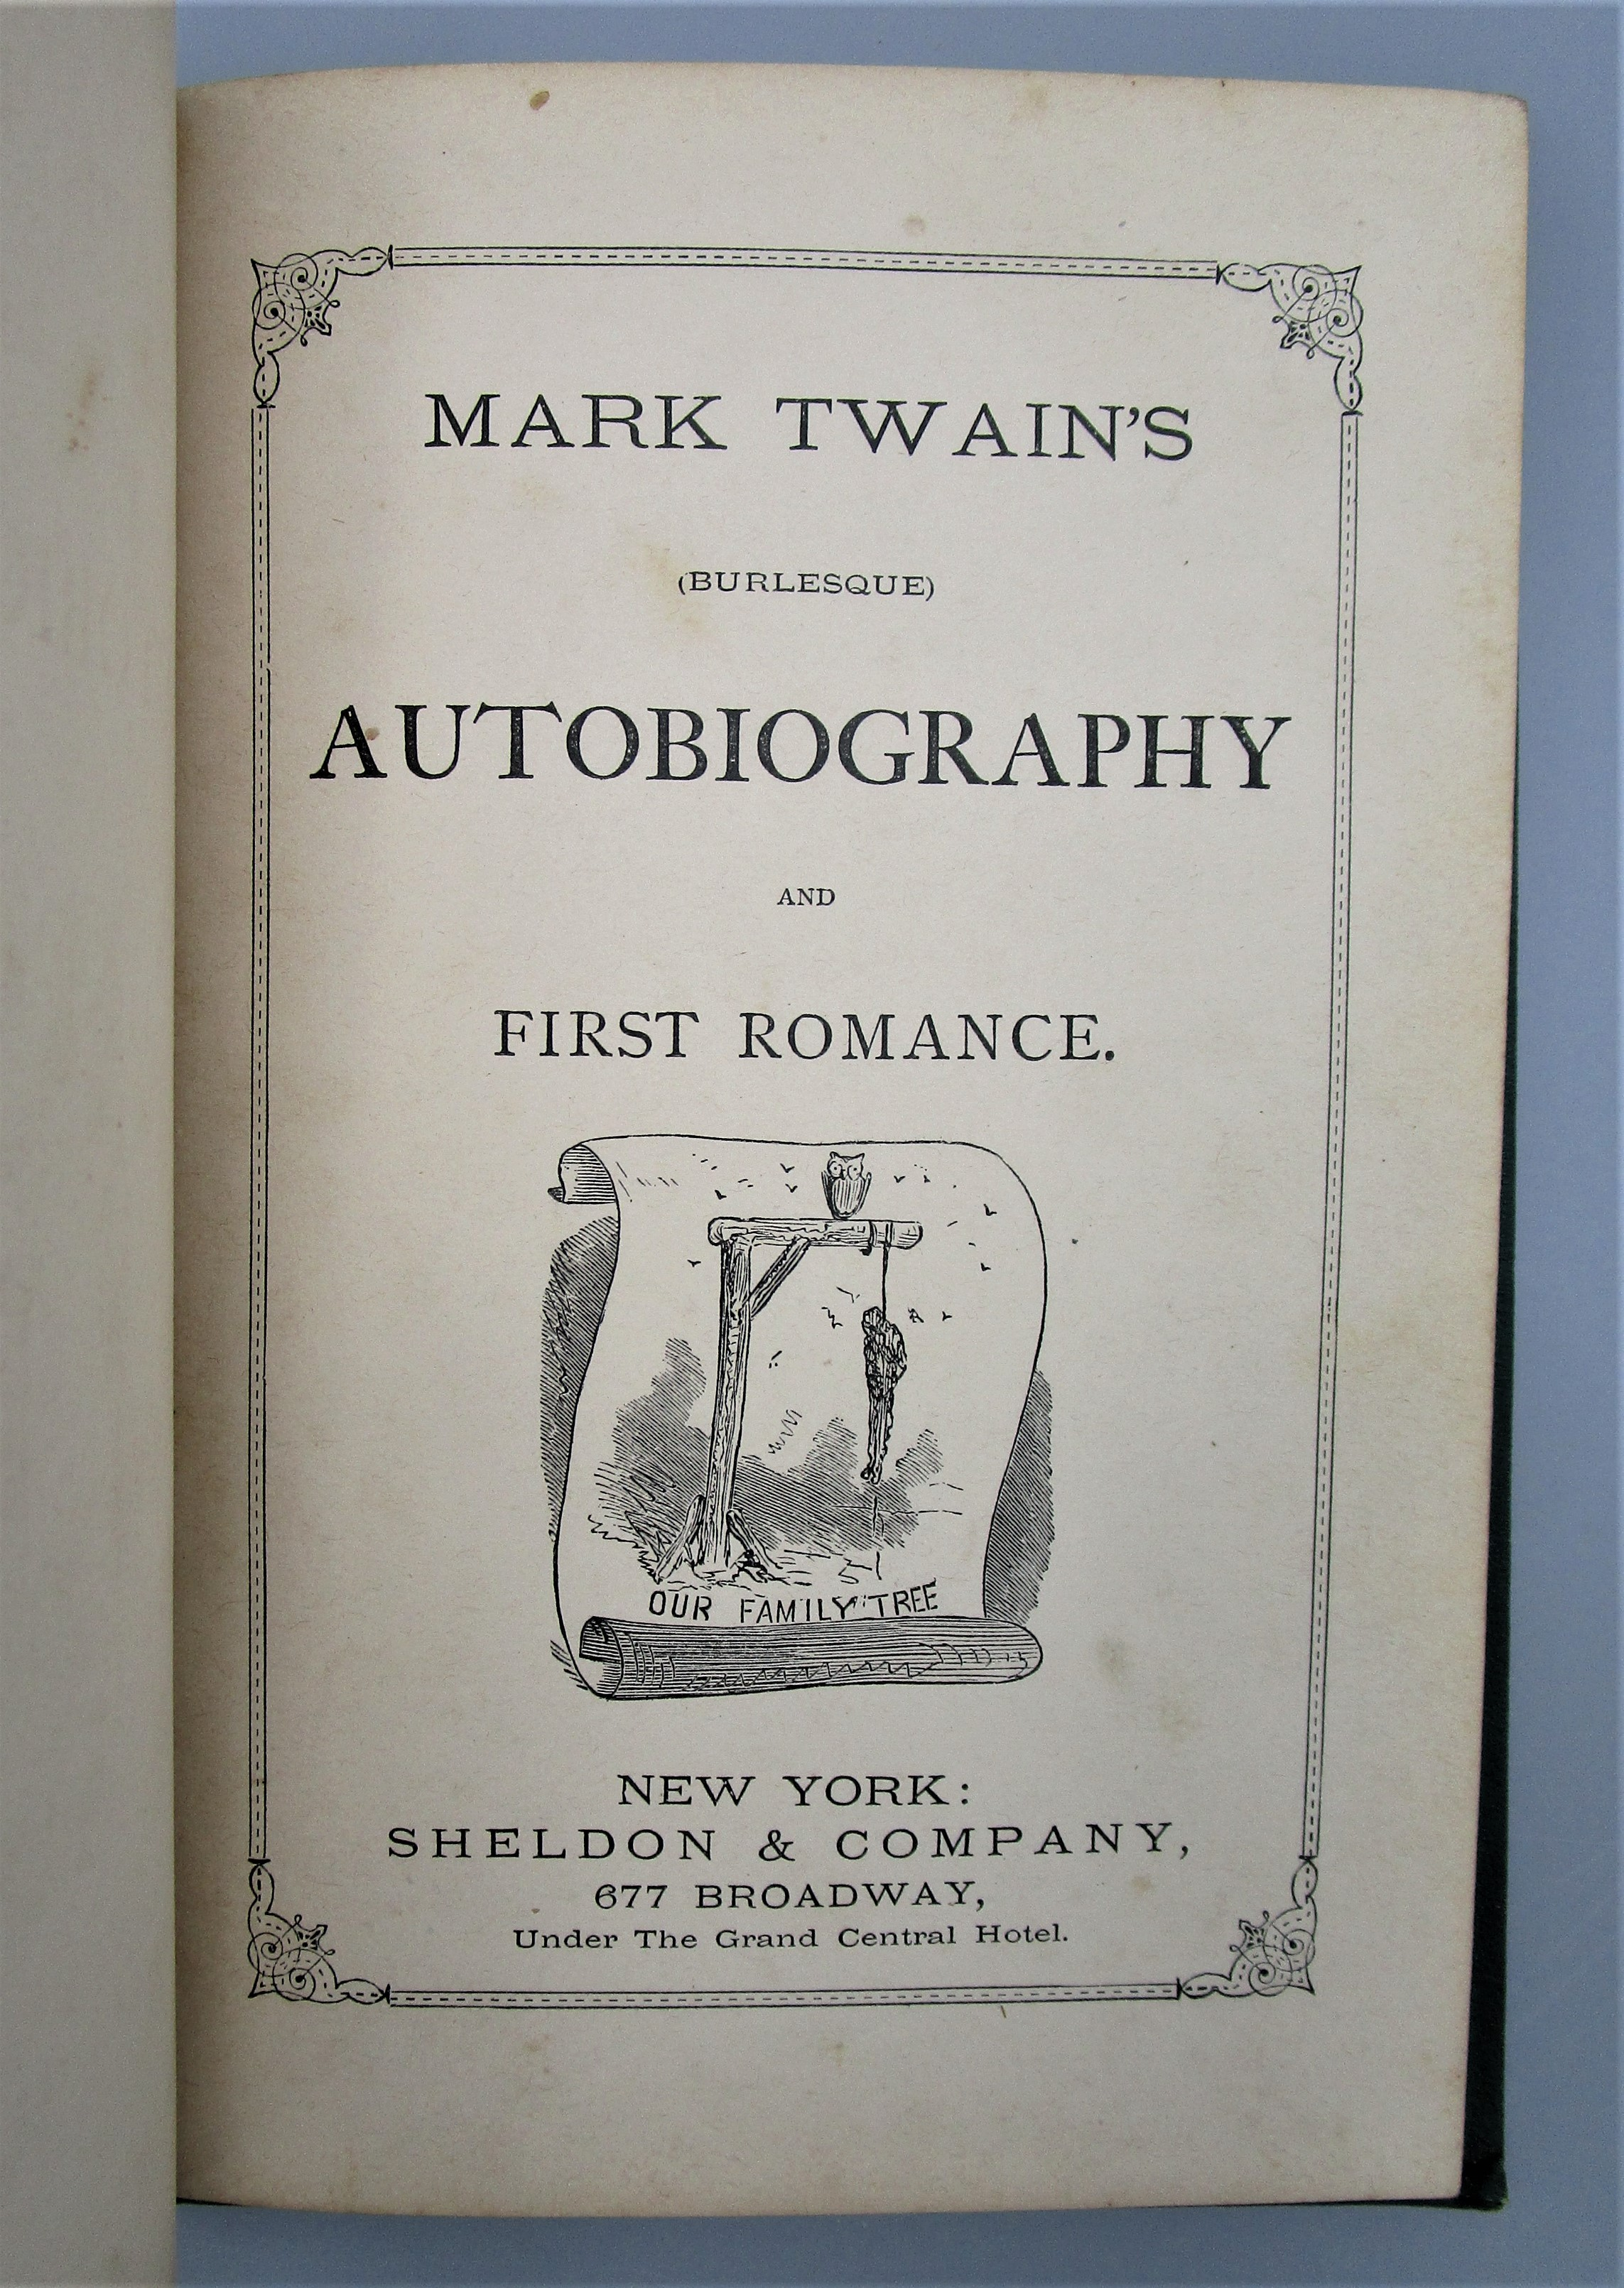 MARK TWAIN'S AUTOBIOGRAPHY AND FIRST ROMANCE, by Mark Twain - 1871